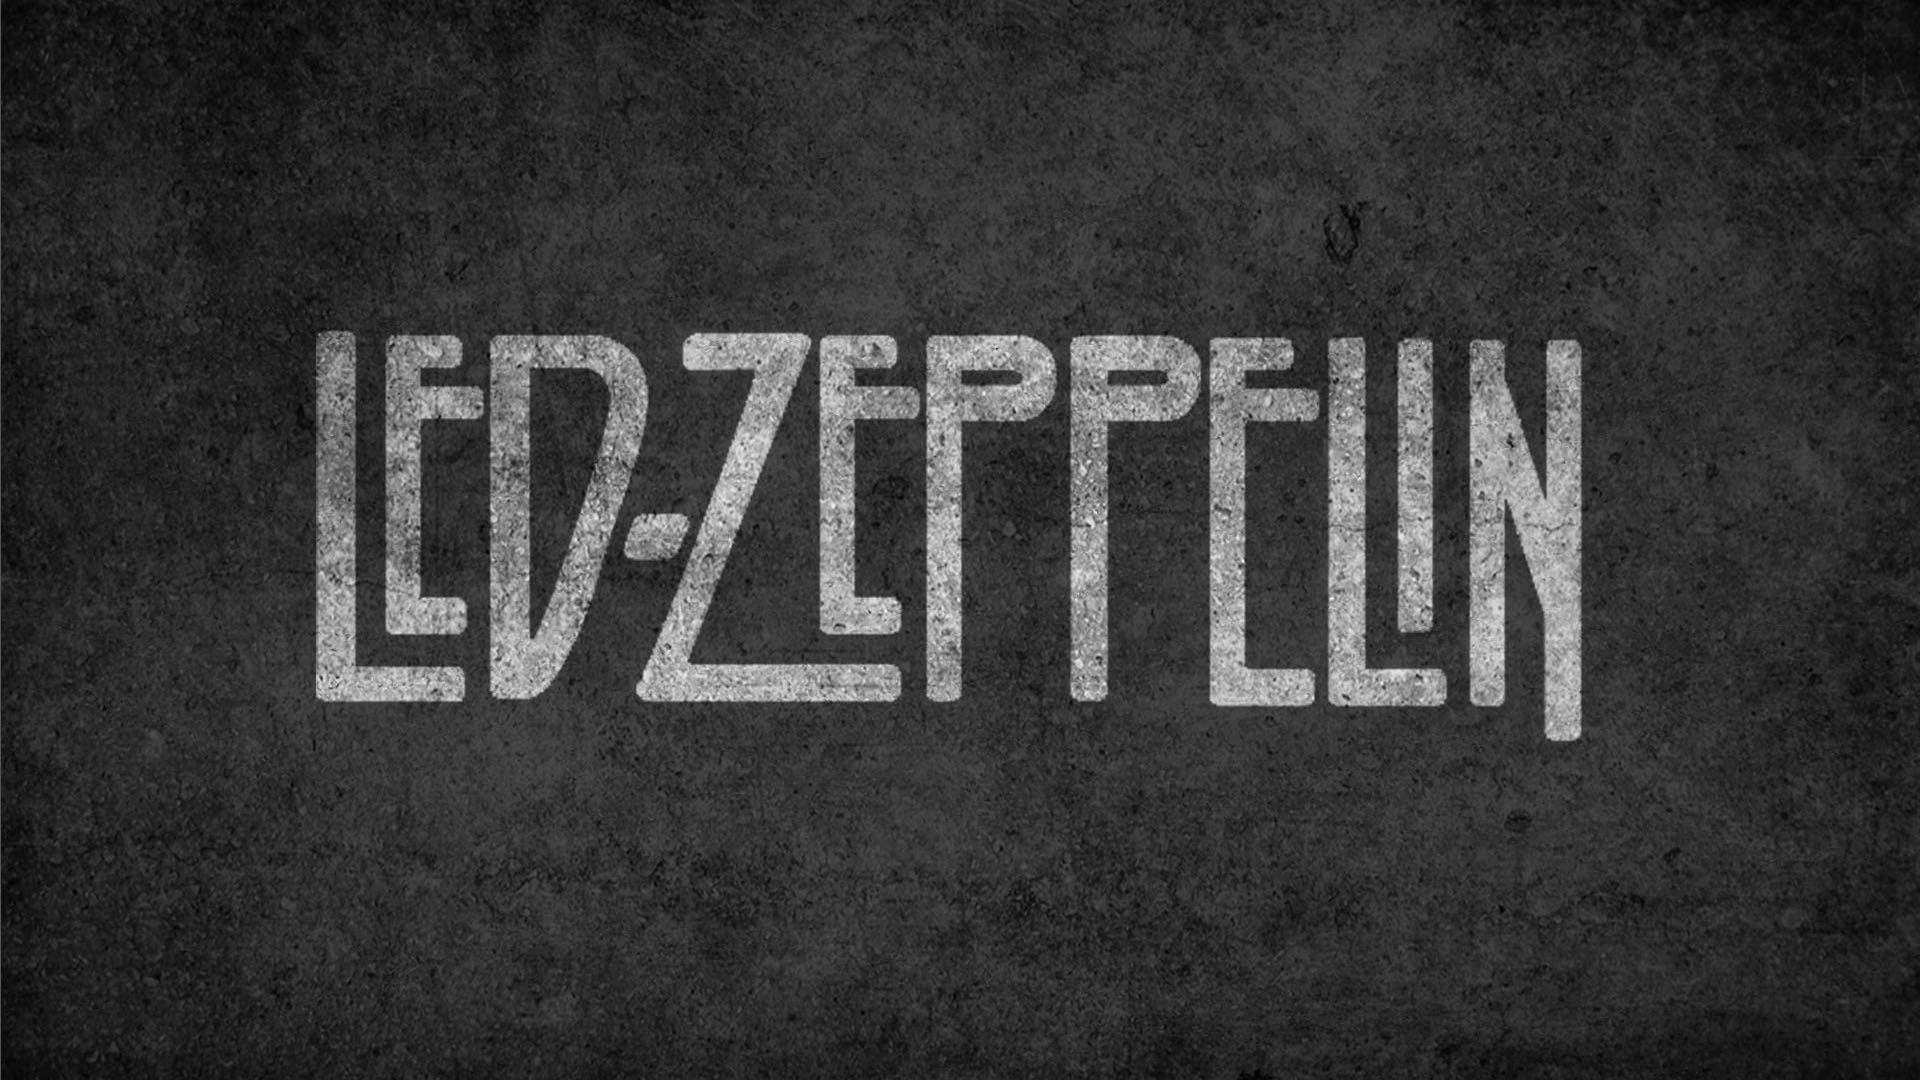 Led Zeppelin Wallpaper For Android Posted By Ethan Johnson